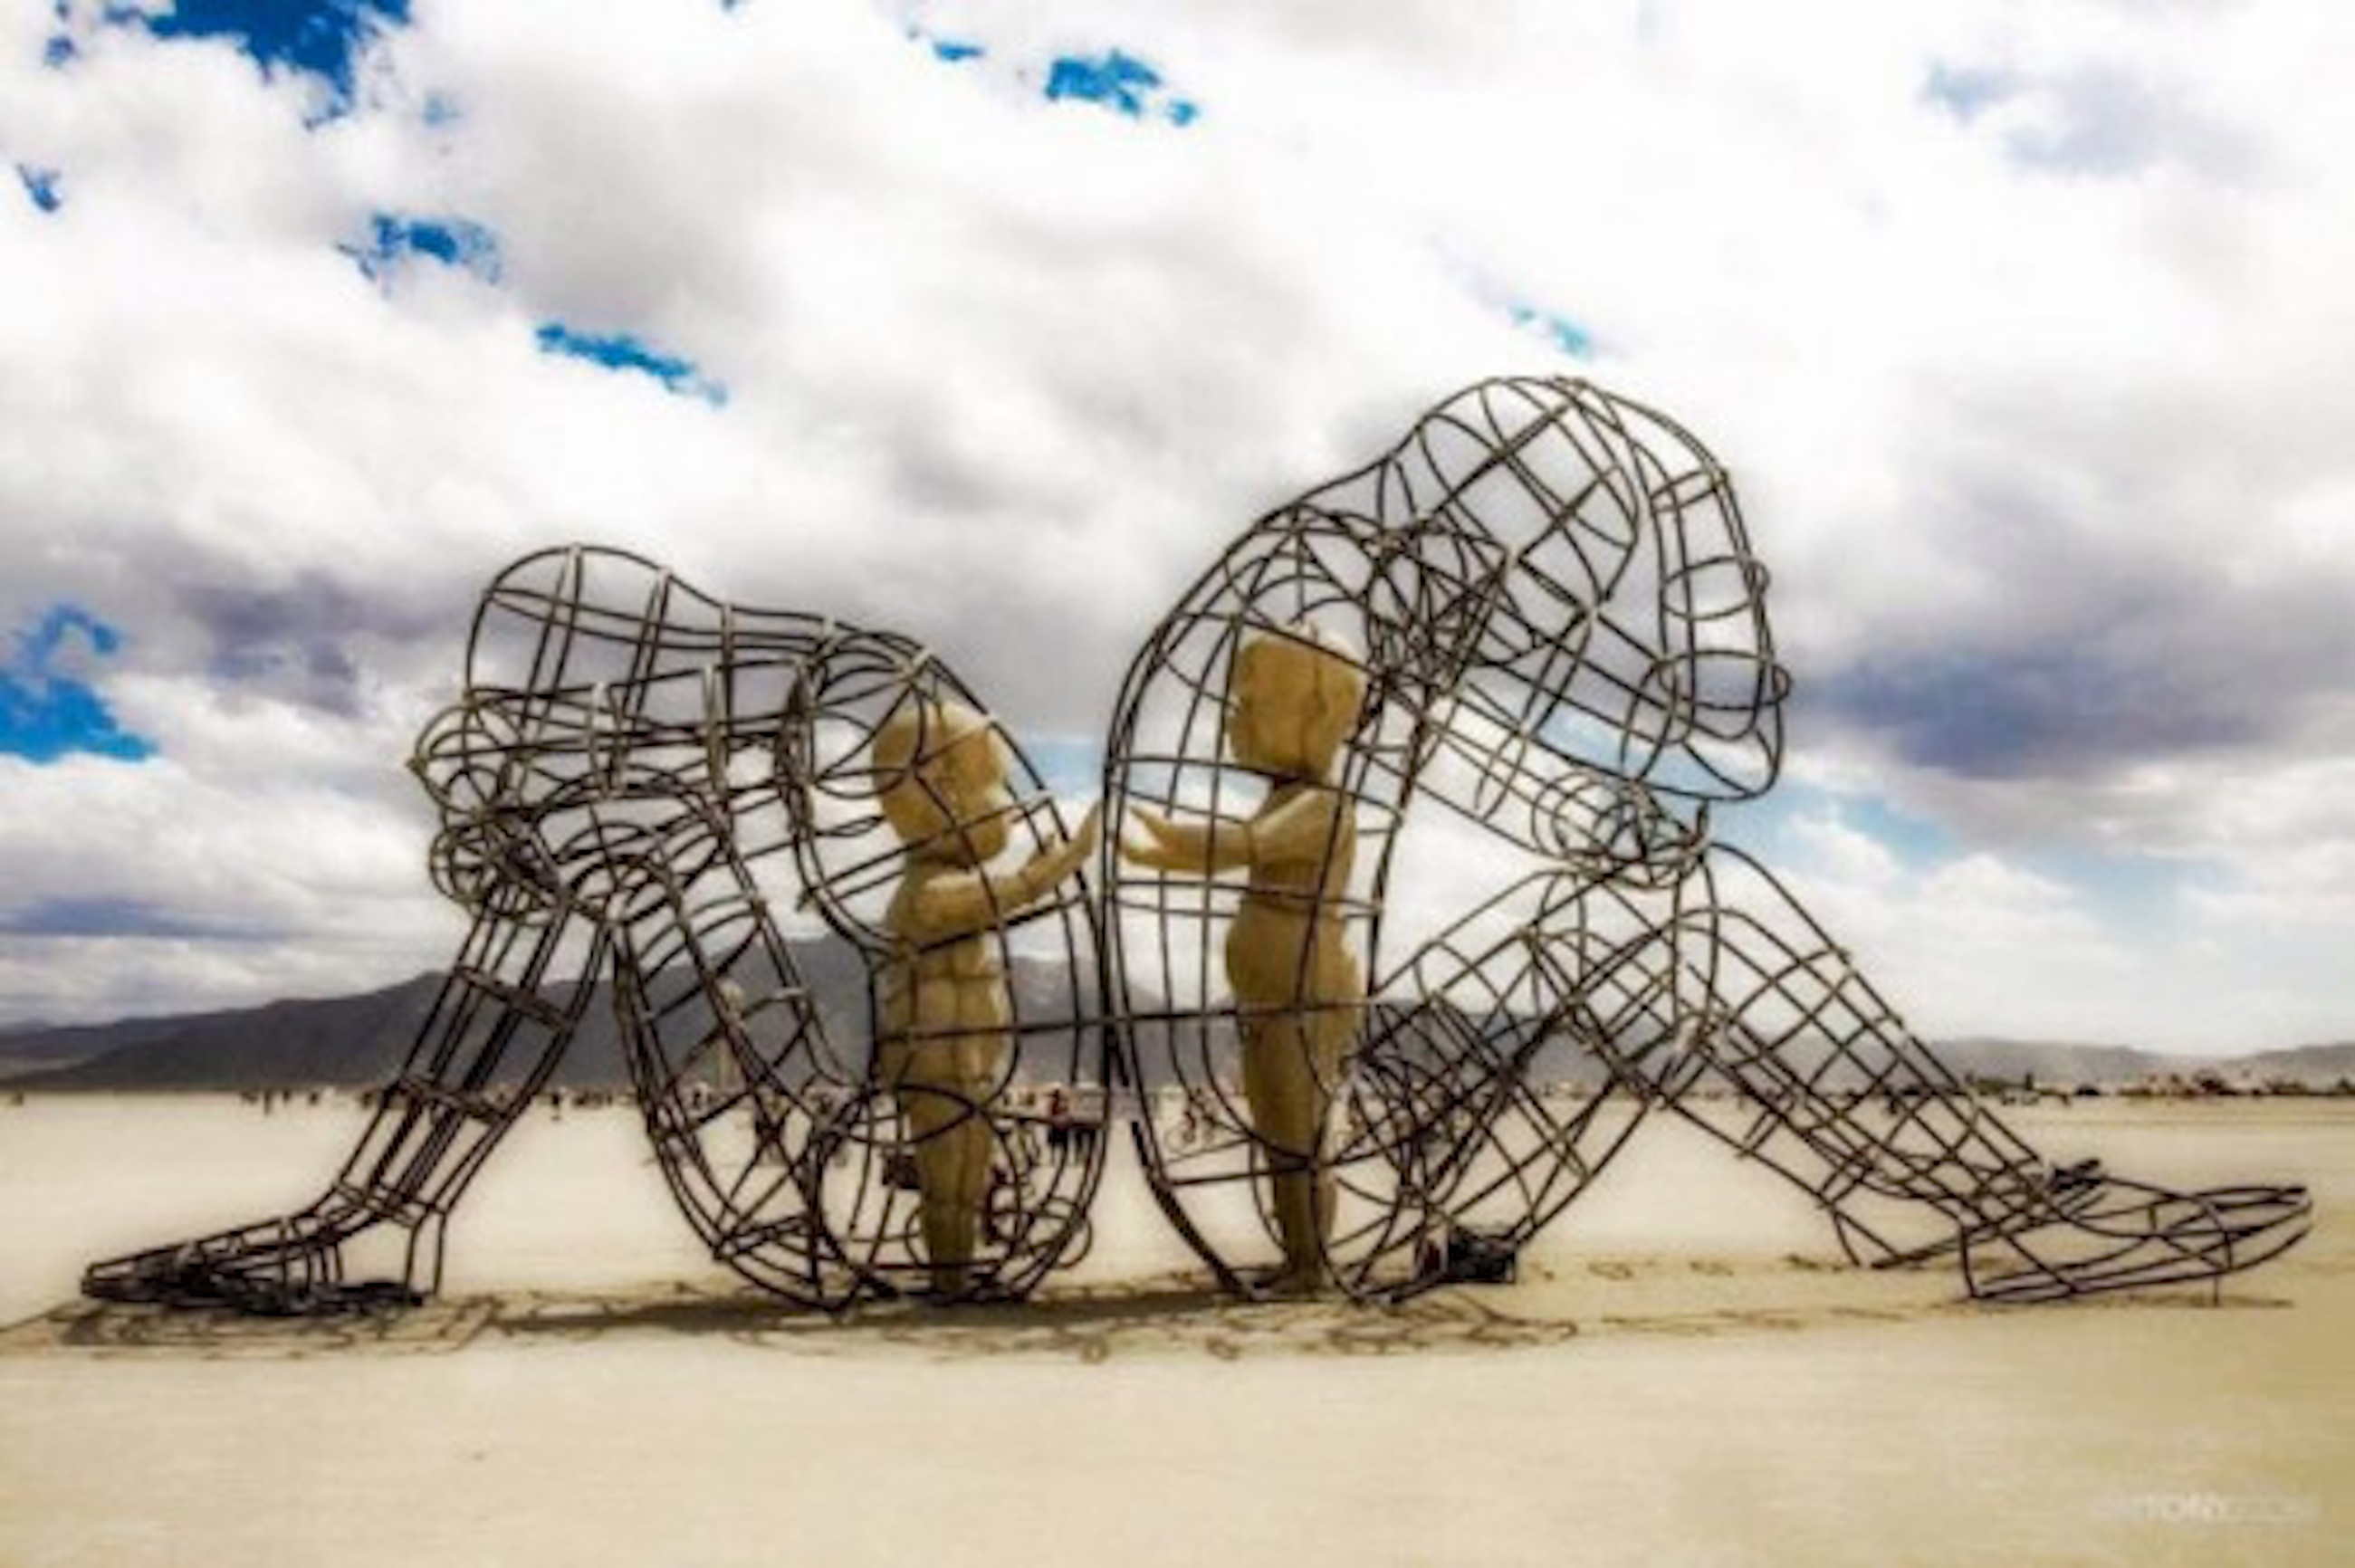 how to make a burning man sculpture